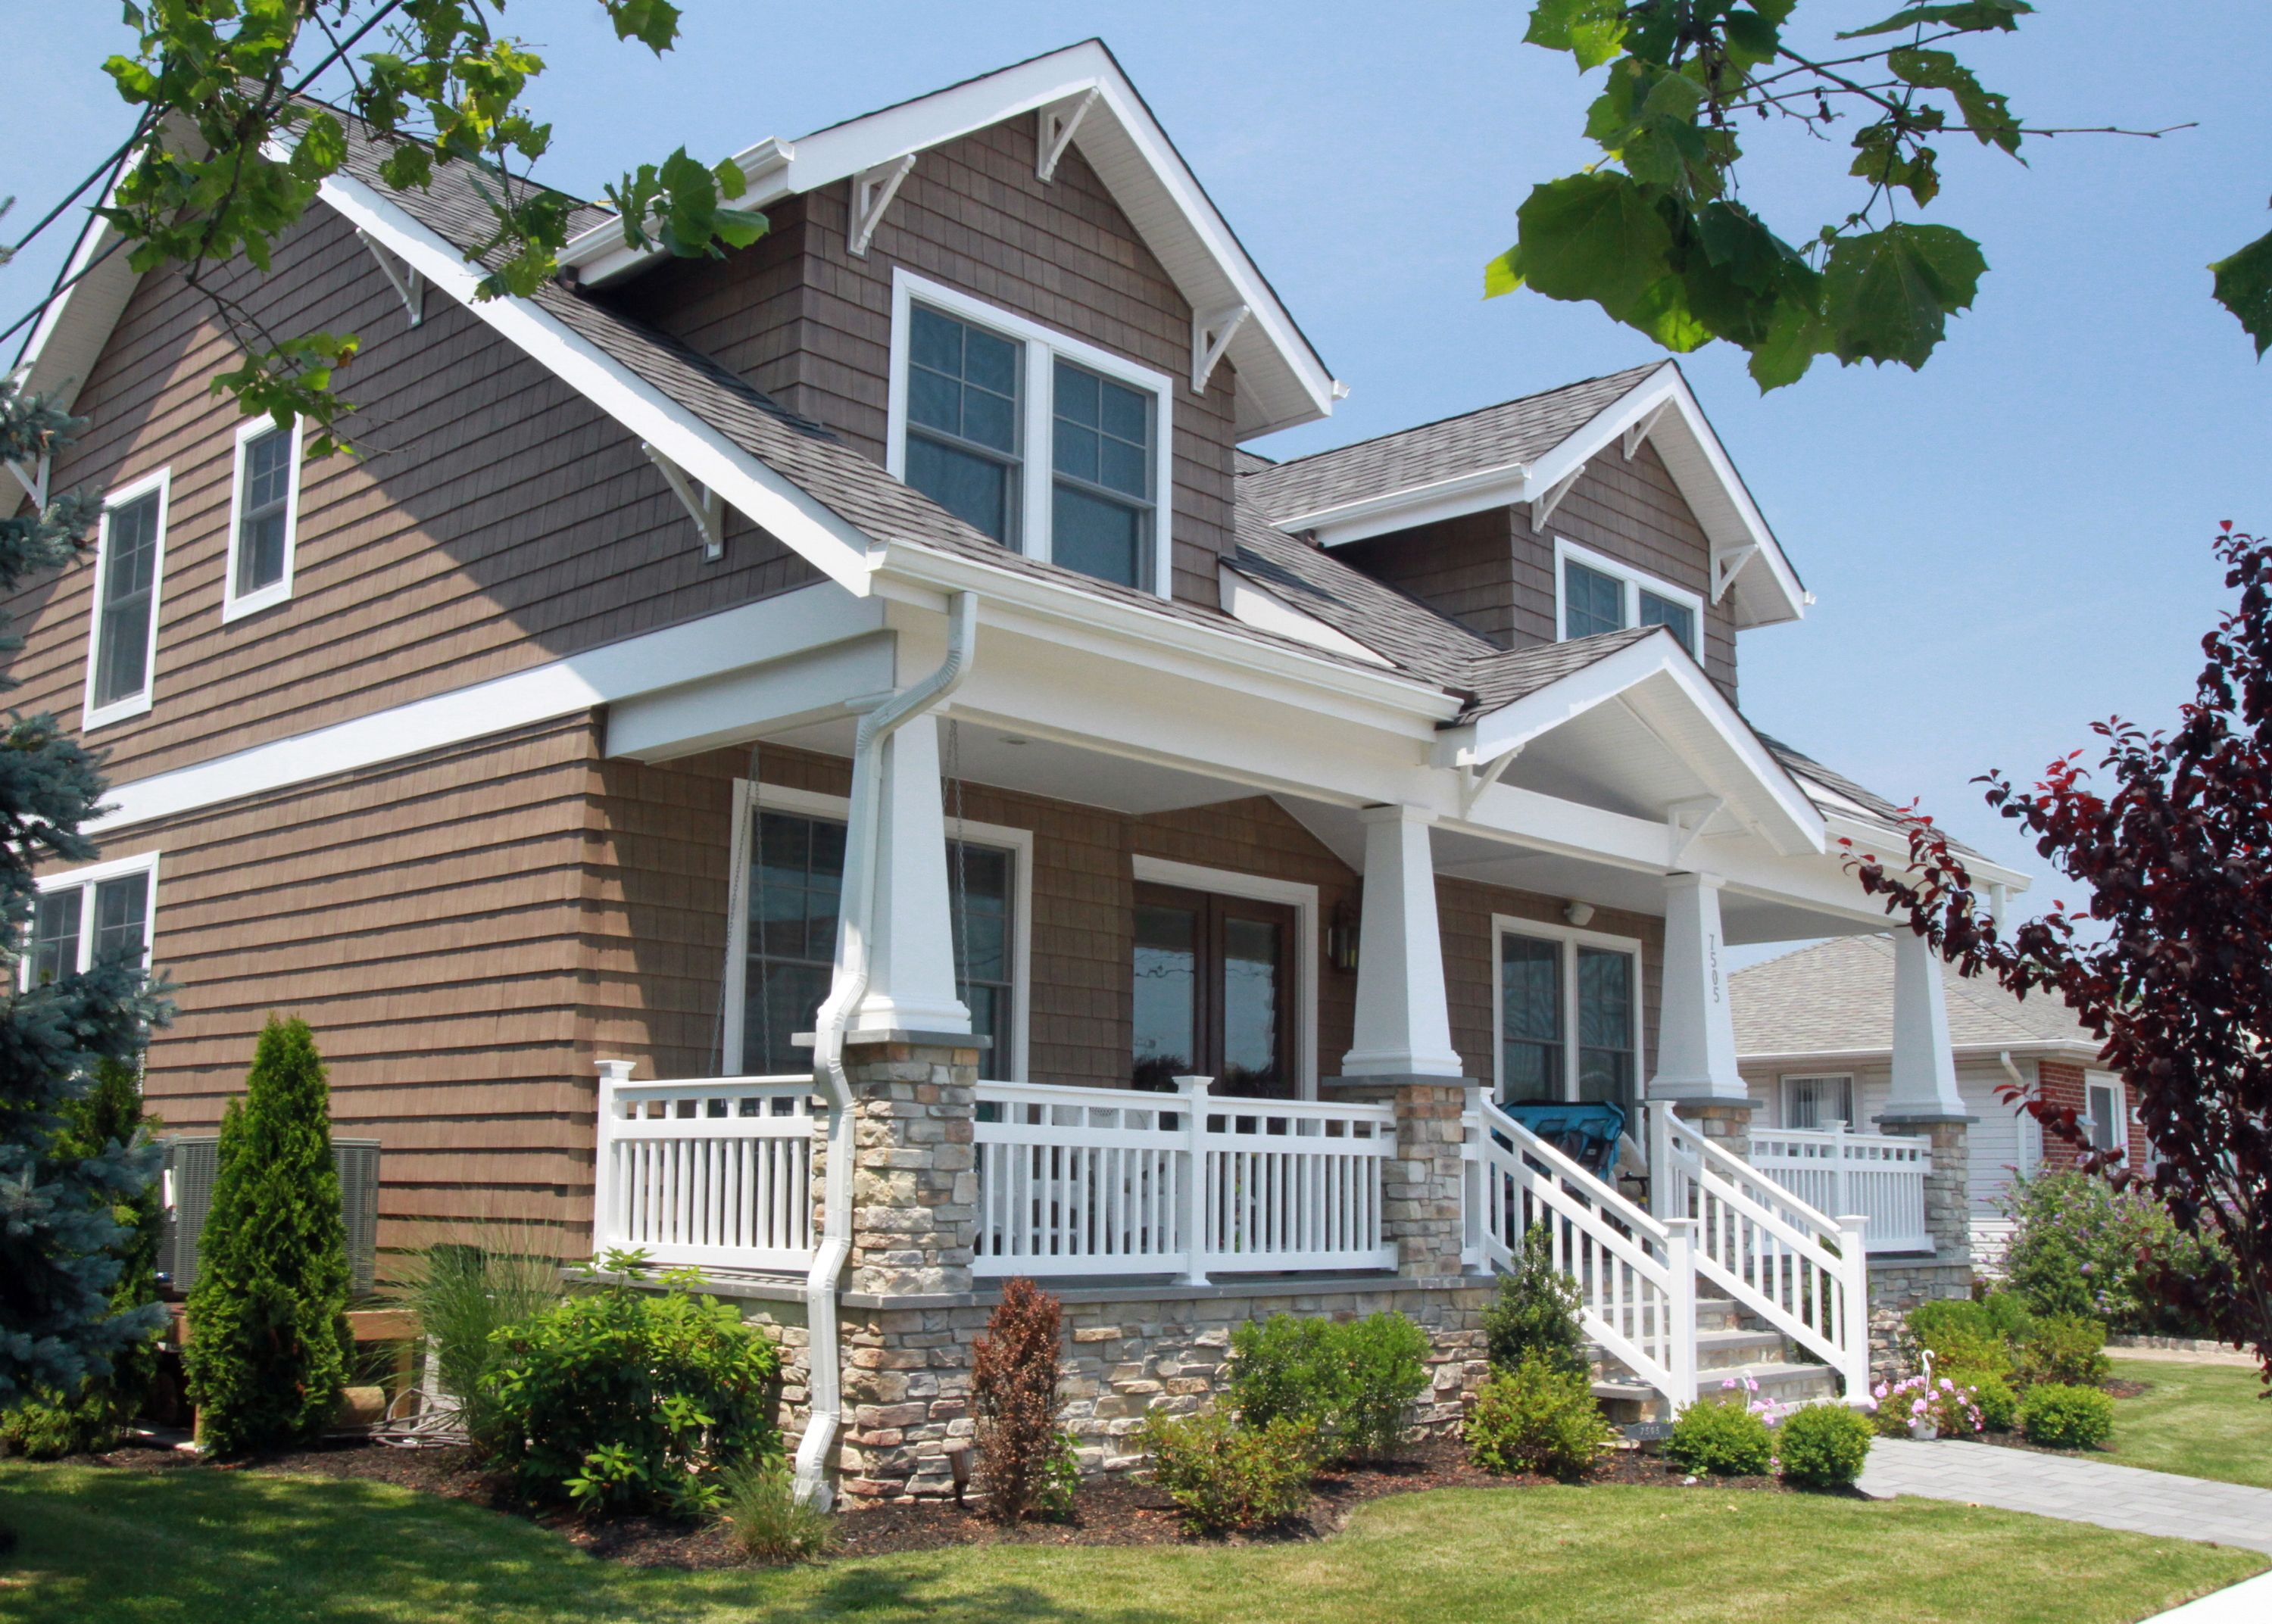 Craftsman style homes with front porches